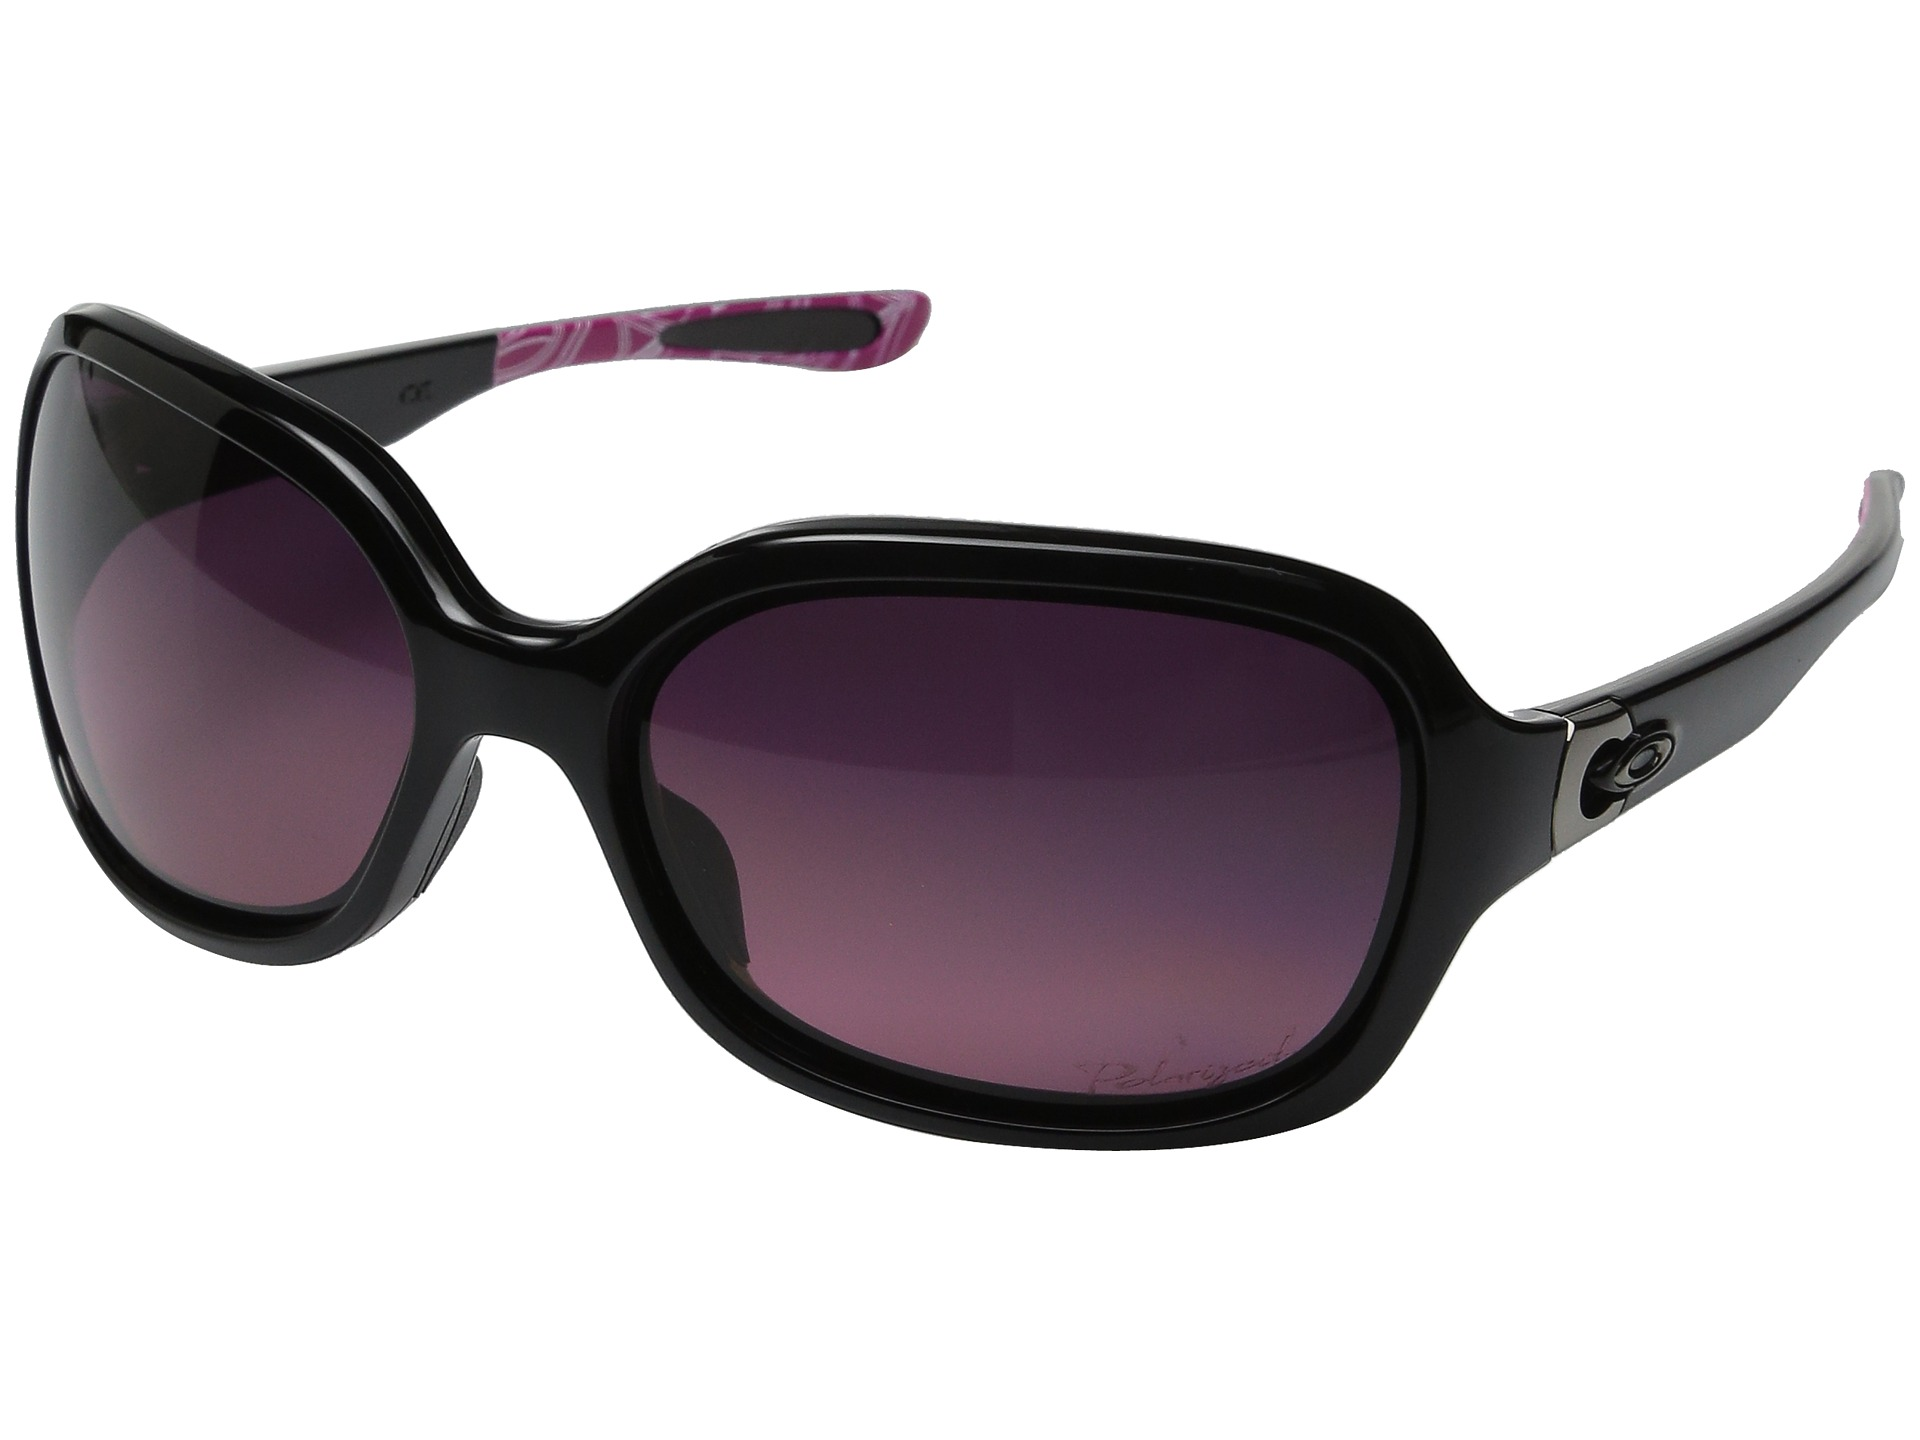 Best Oakley Sunglasses For Women With Narrow Faces